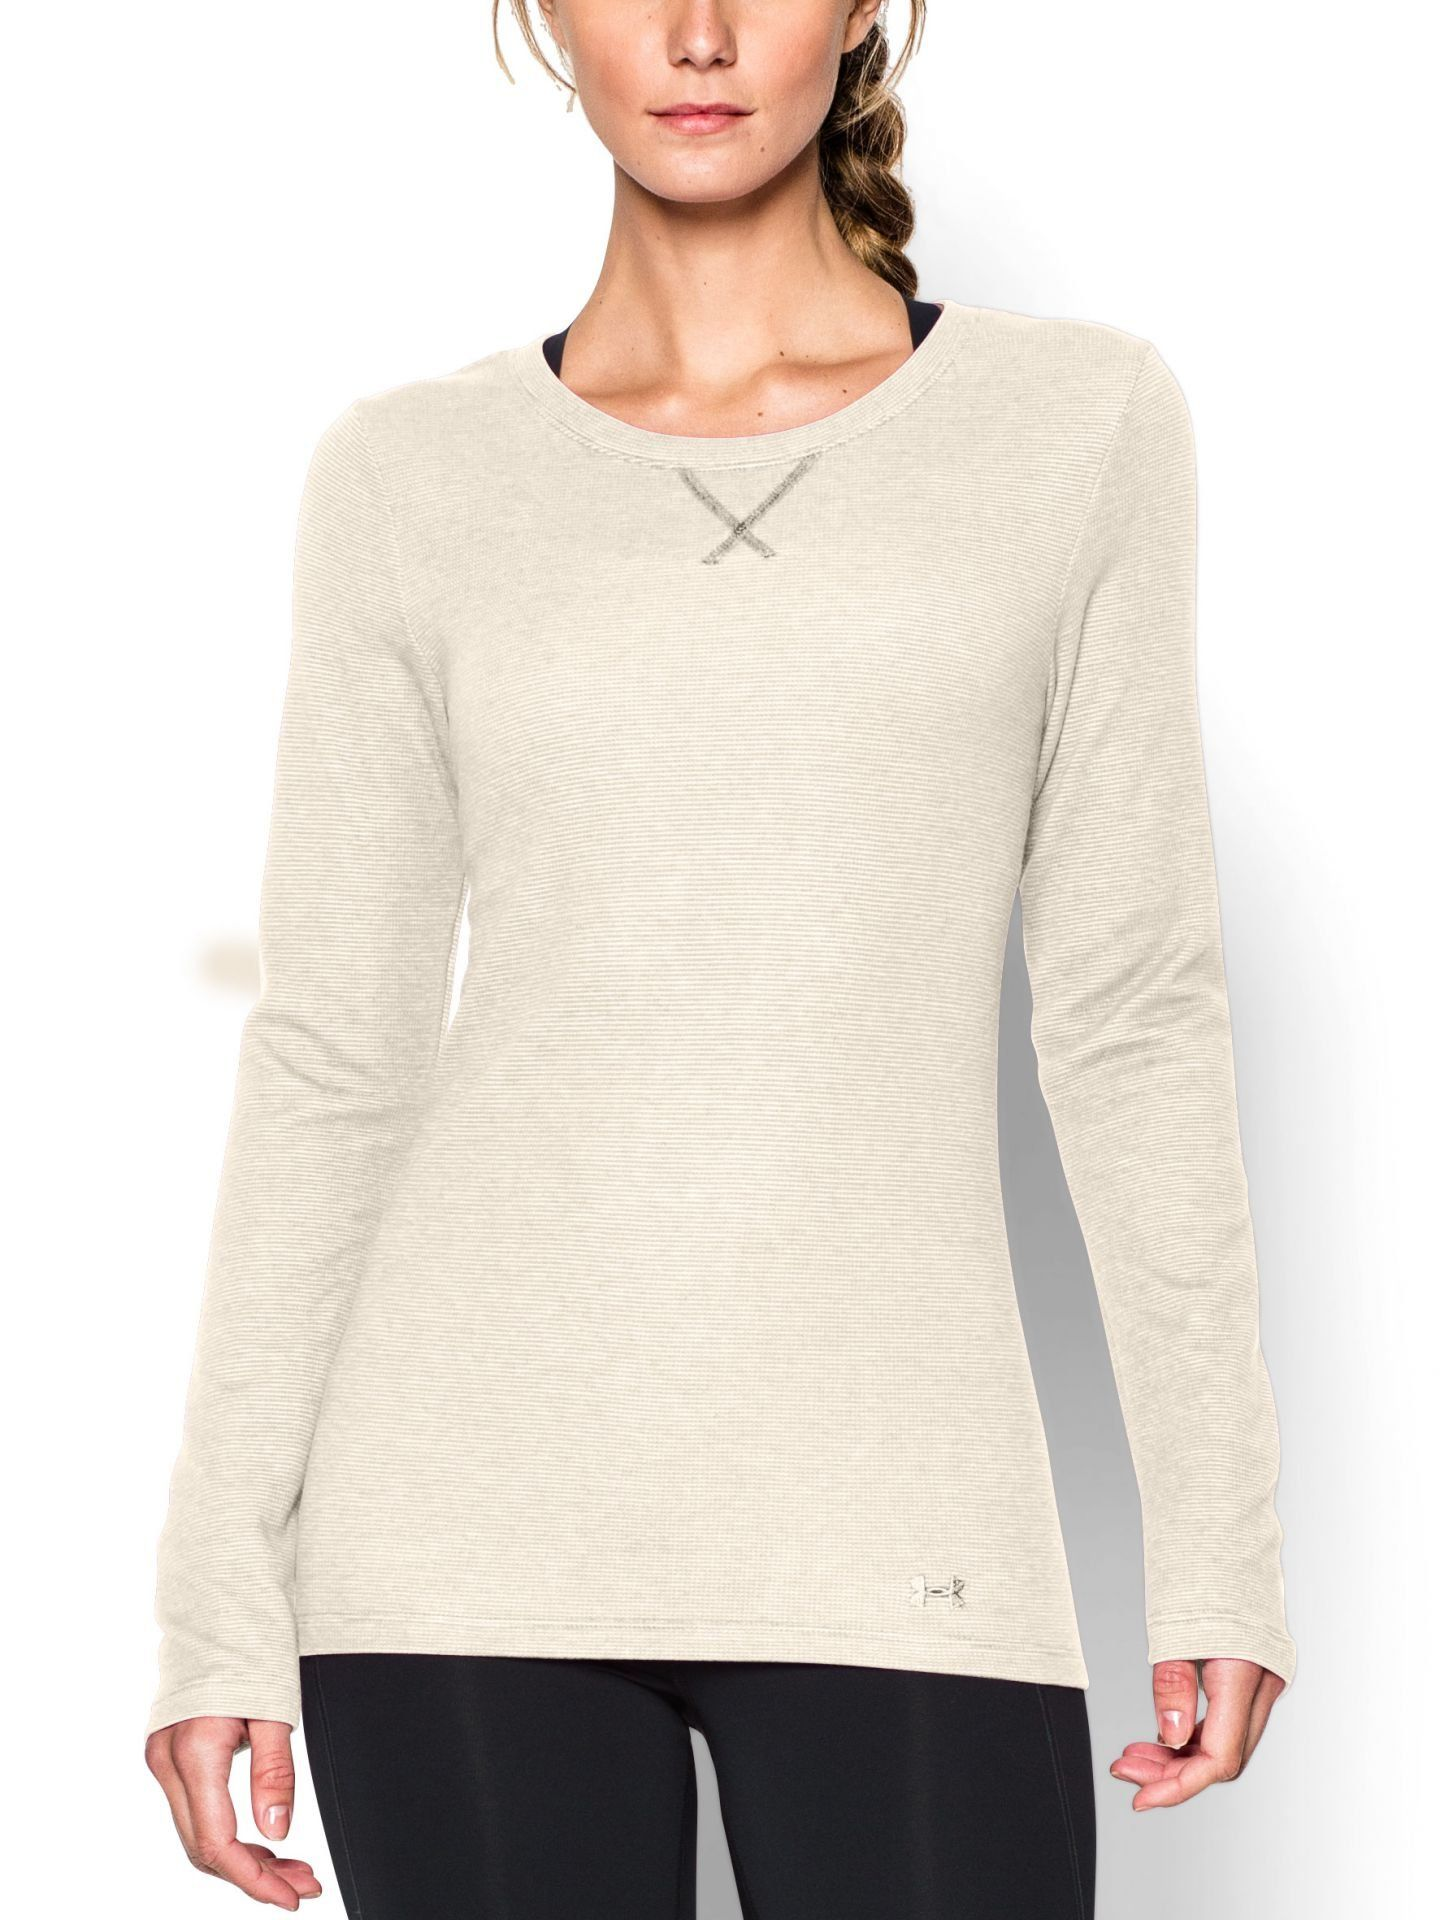 2182562a Under Armour Women's UA Cozy Waffle Long Sleeve Shirt, Tuft White, Large.  Shirt